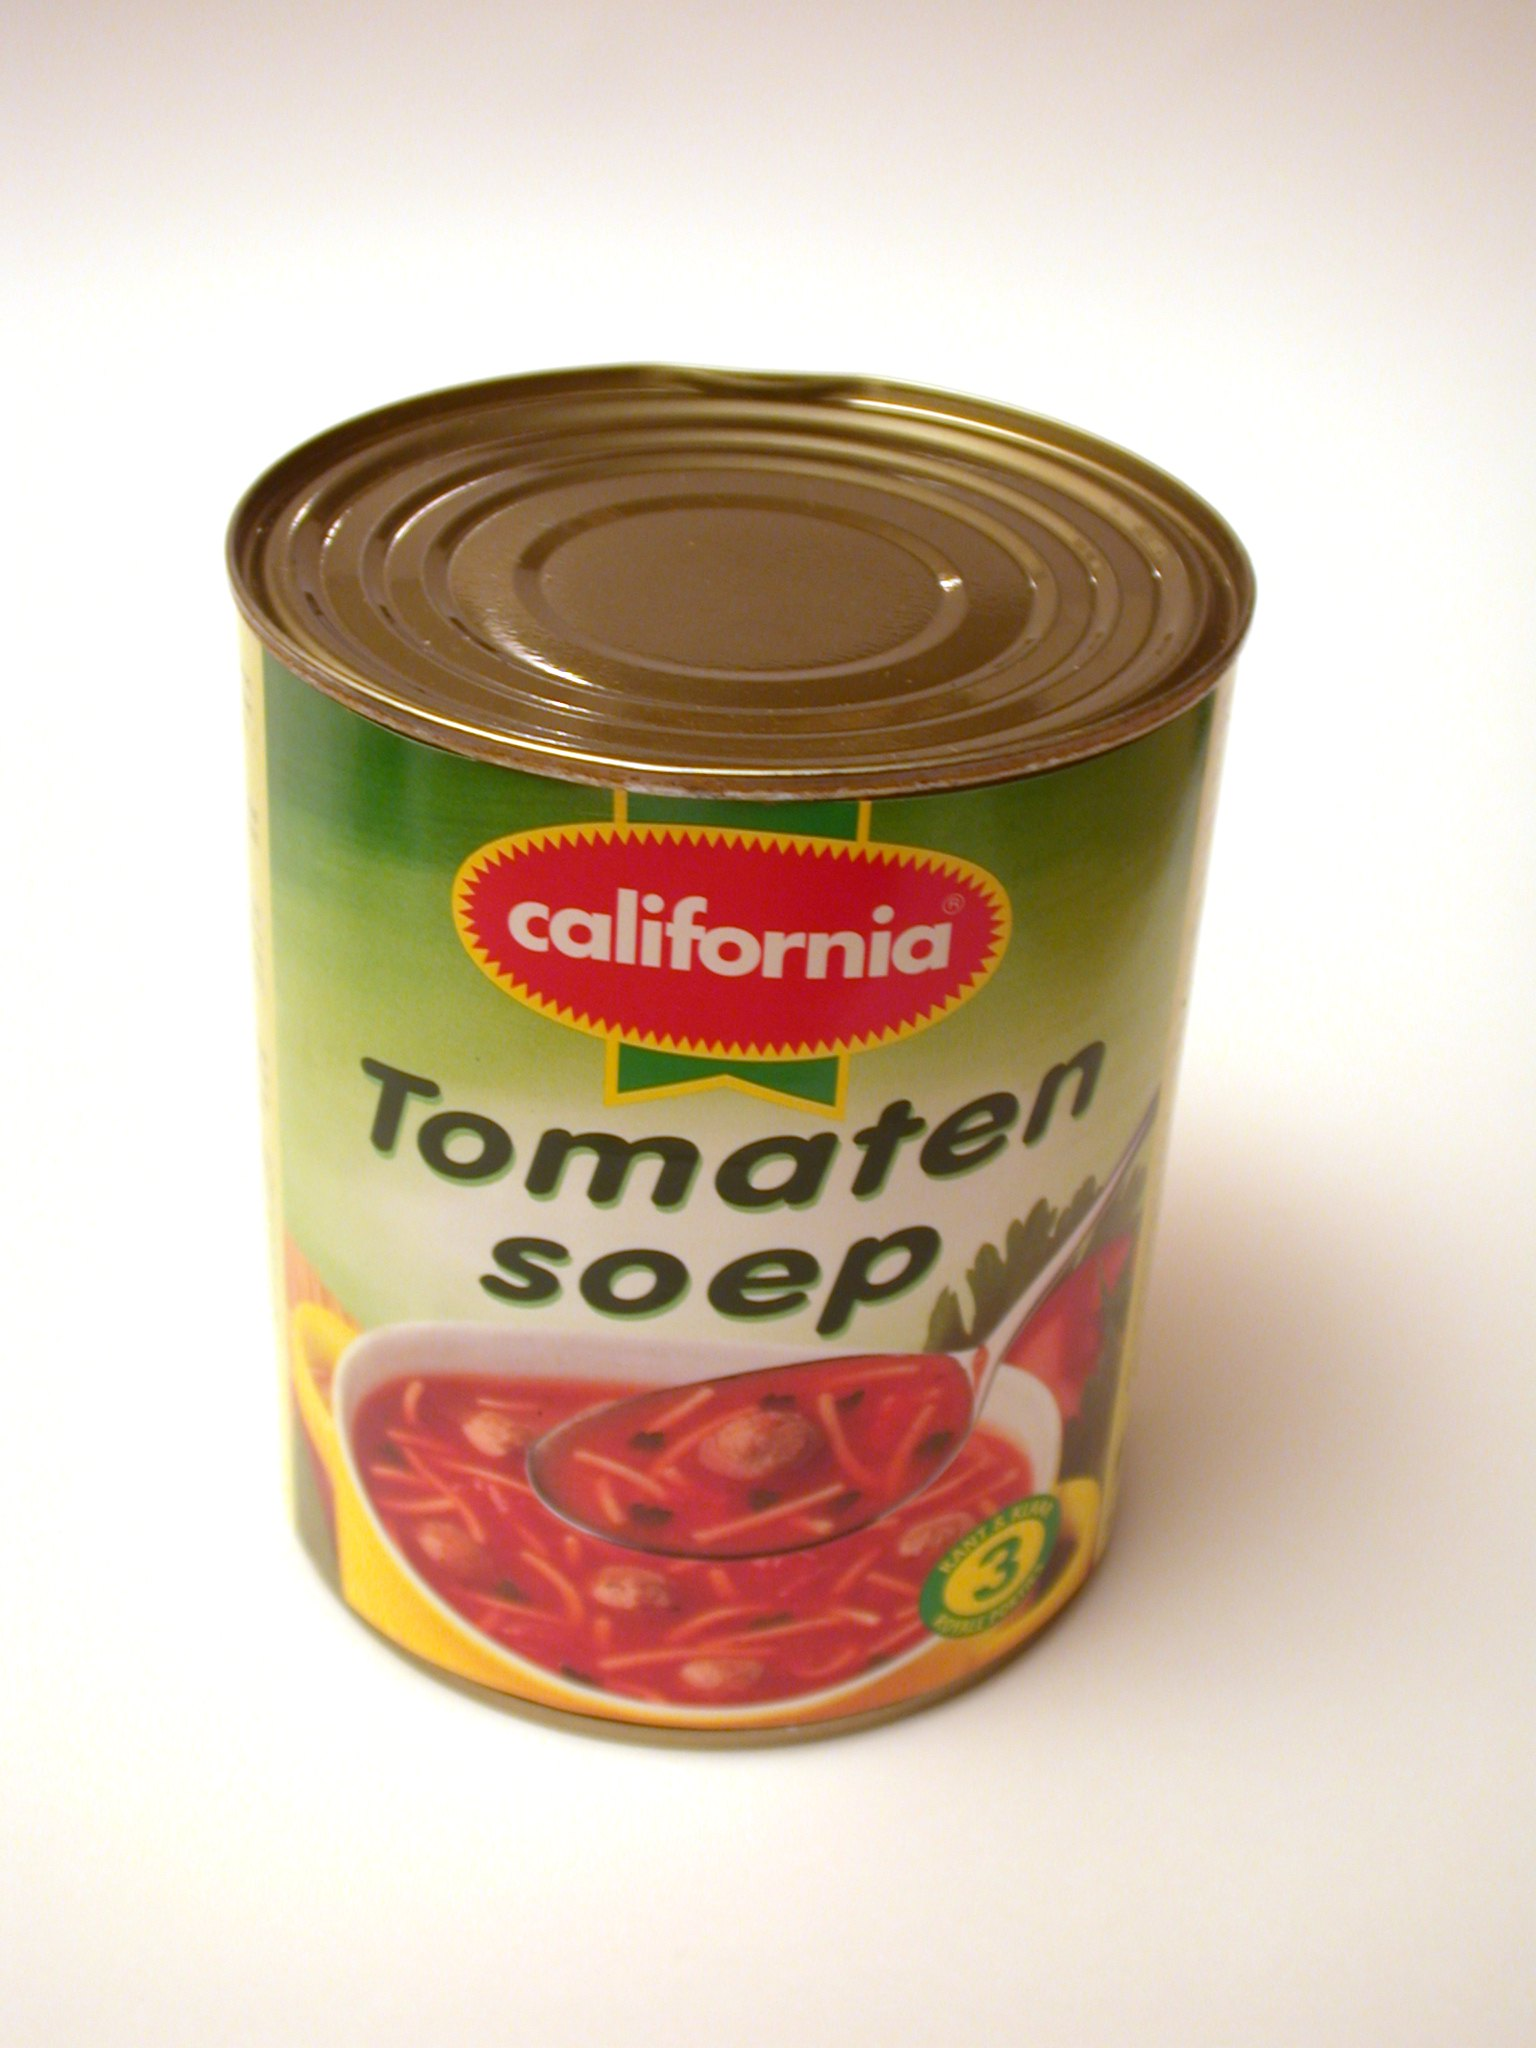 soup tomatosoup tincan can objects household food california